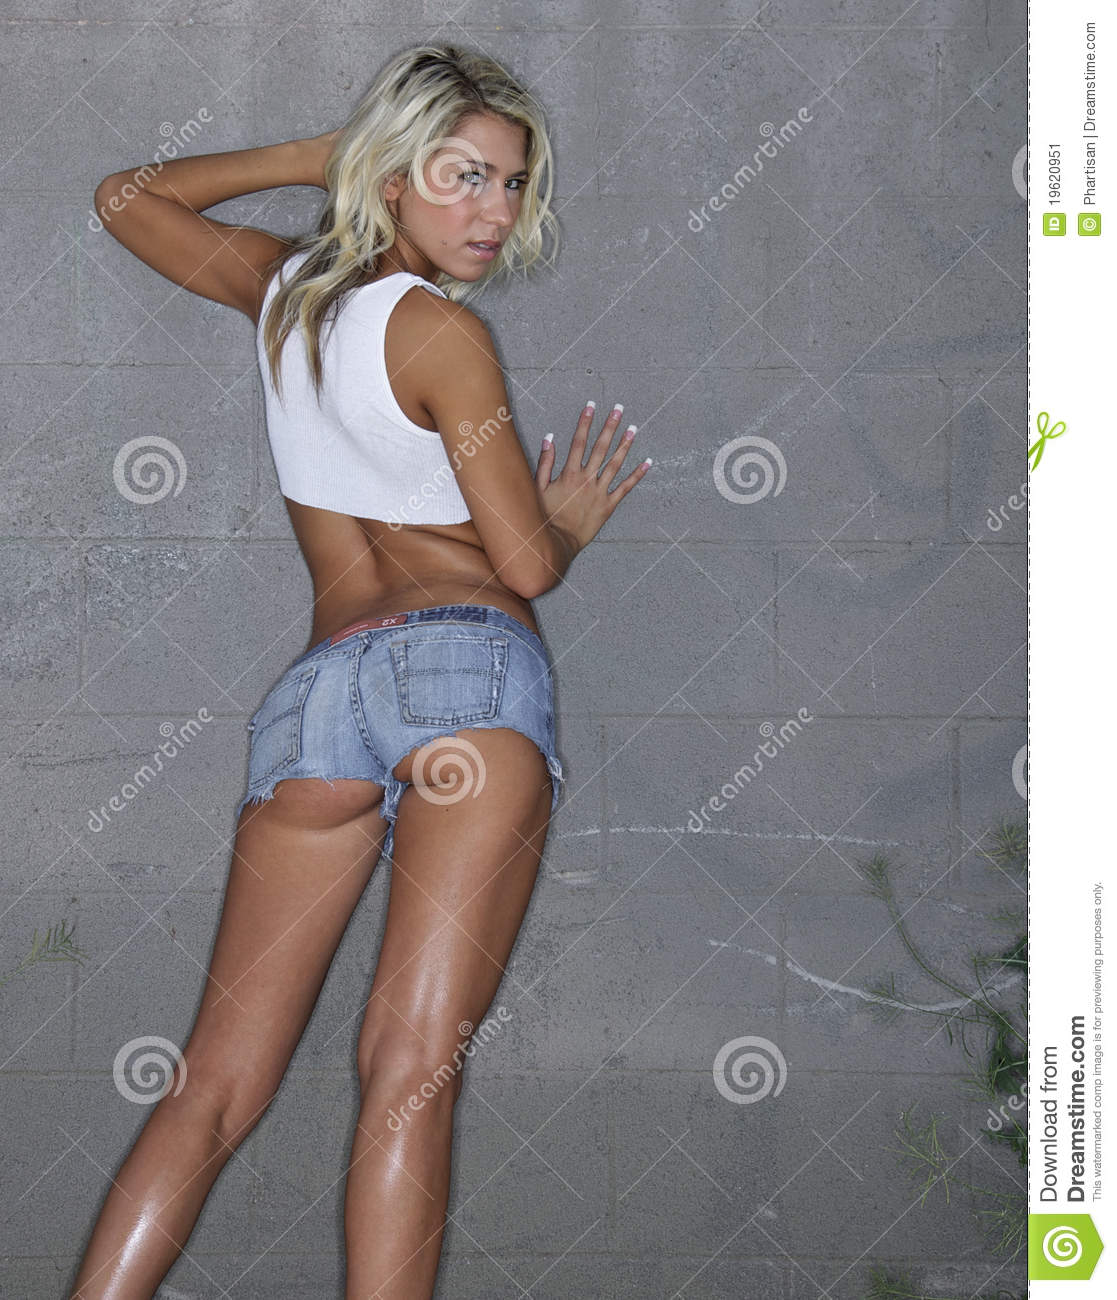 image Girl wearing tiny shorts